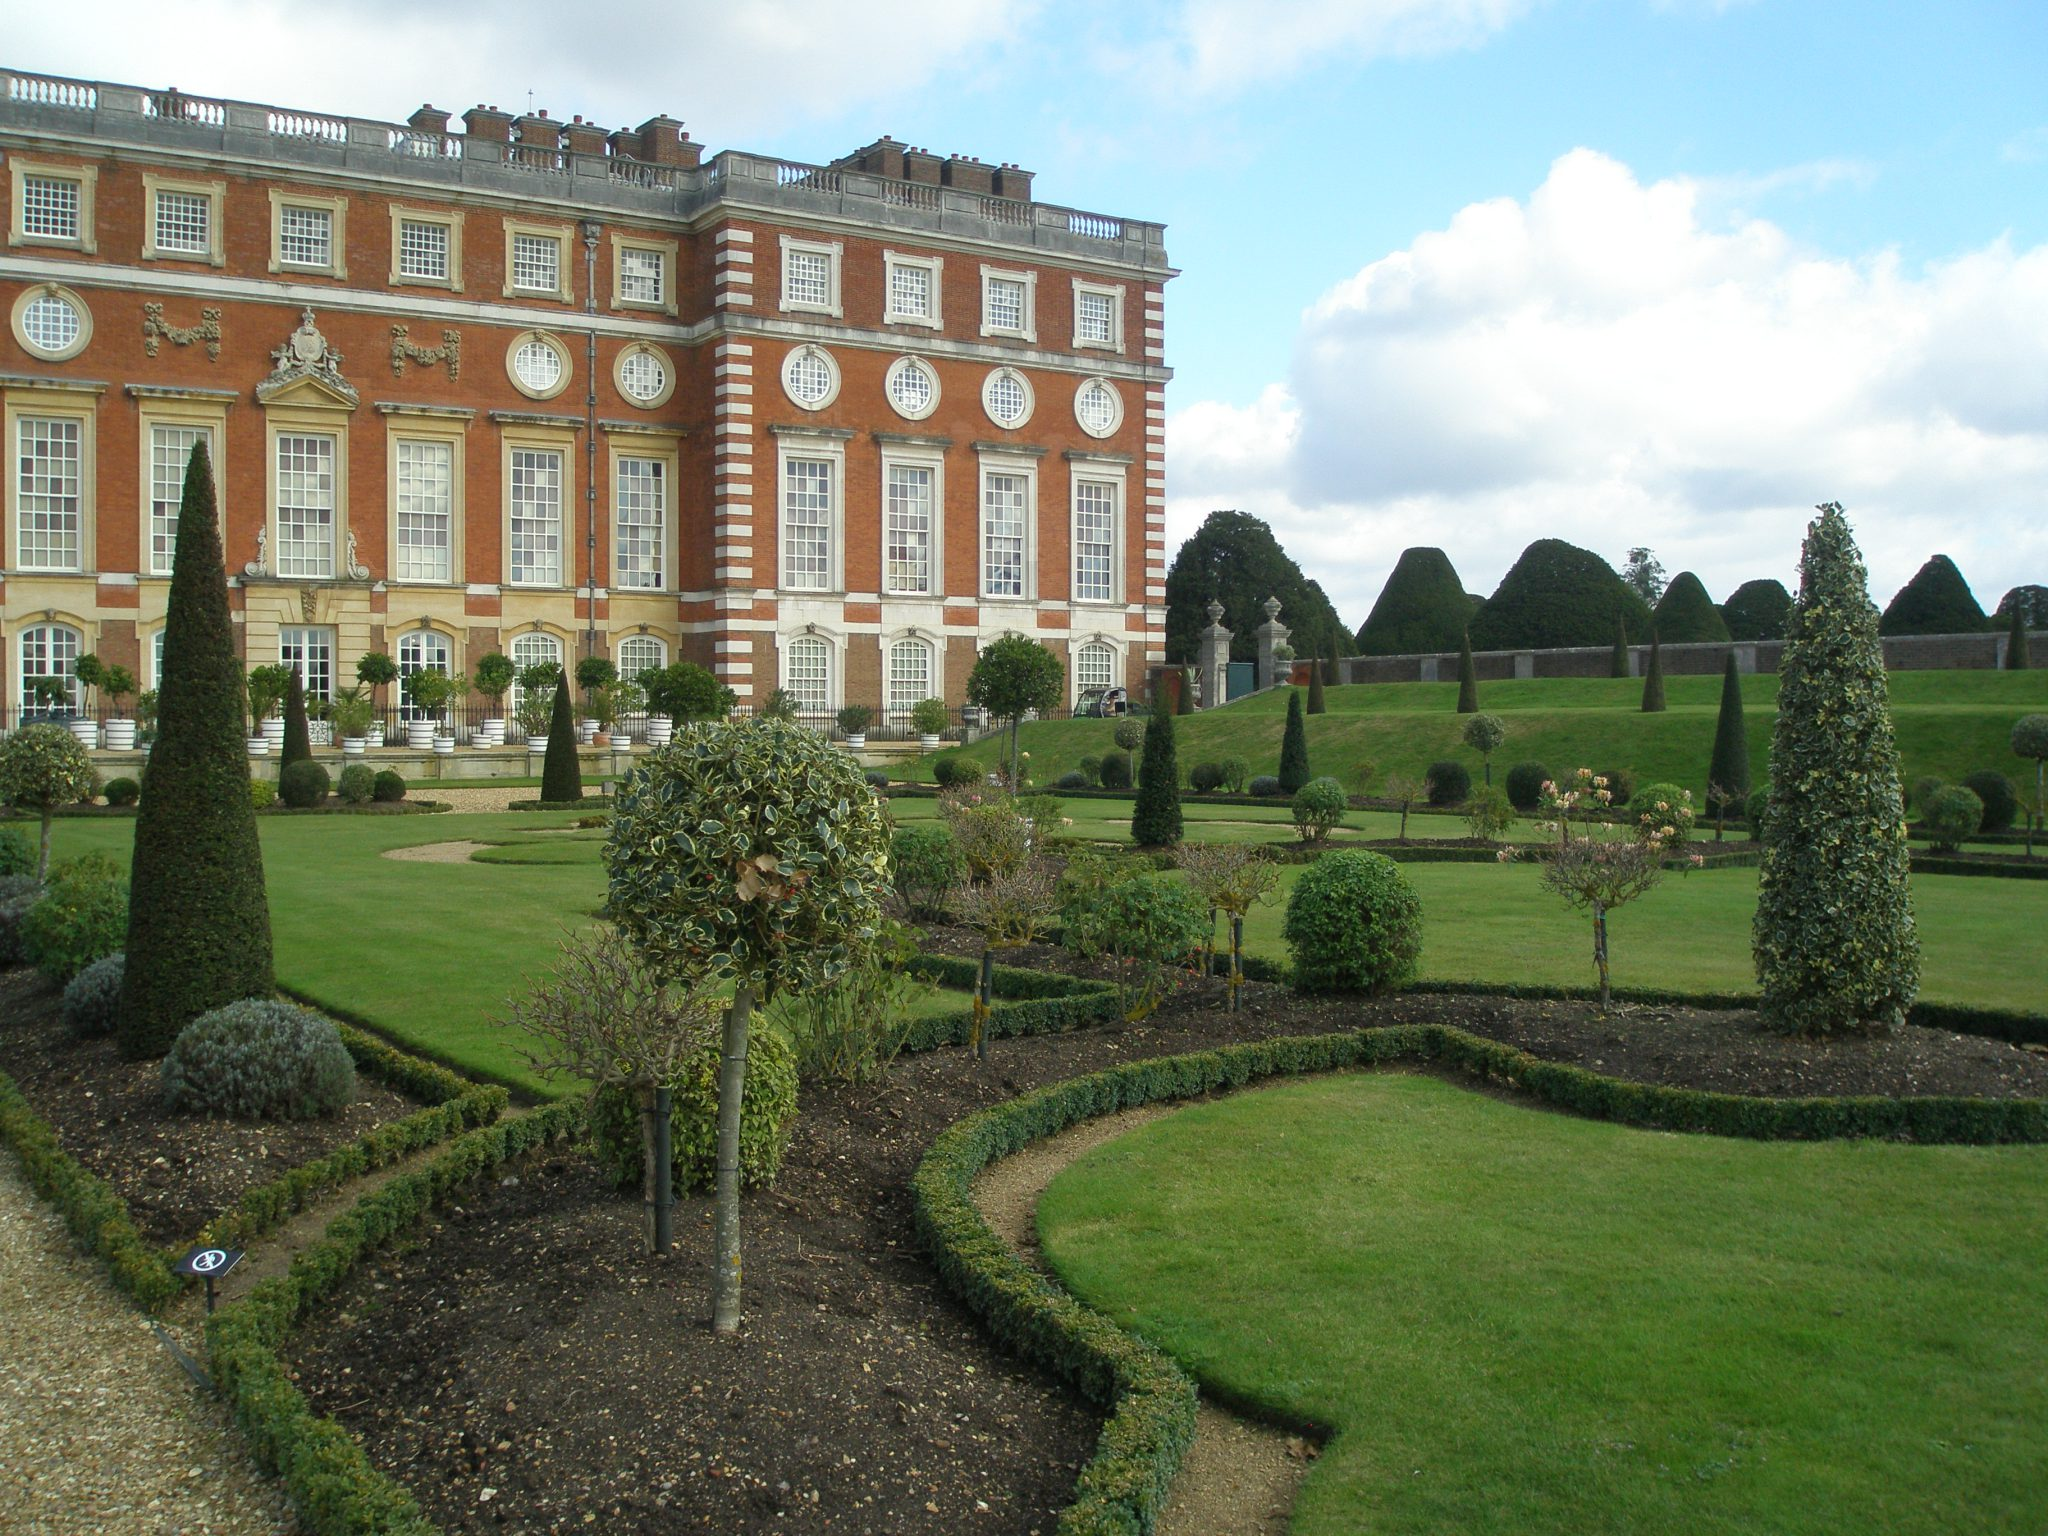 The Knot Garden area of the Privy Garden